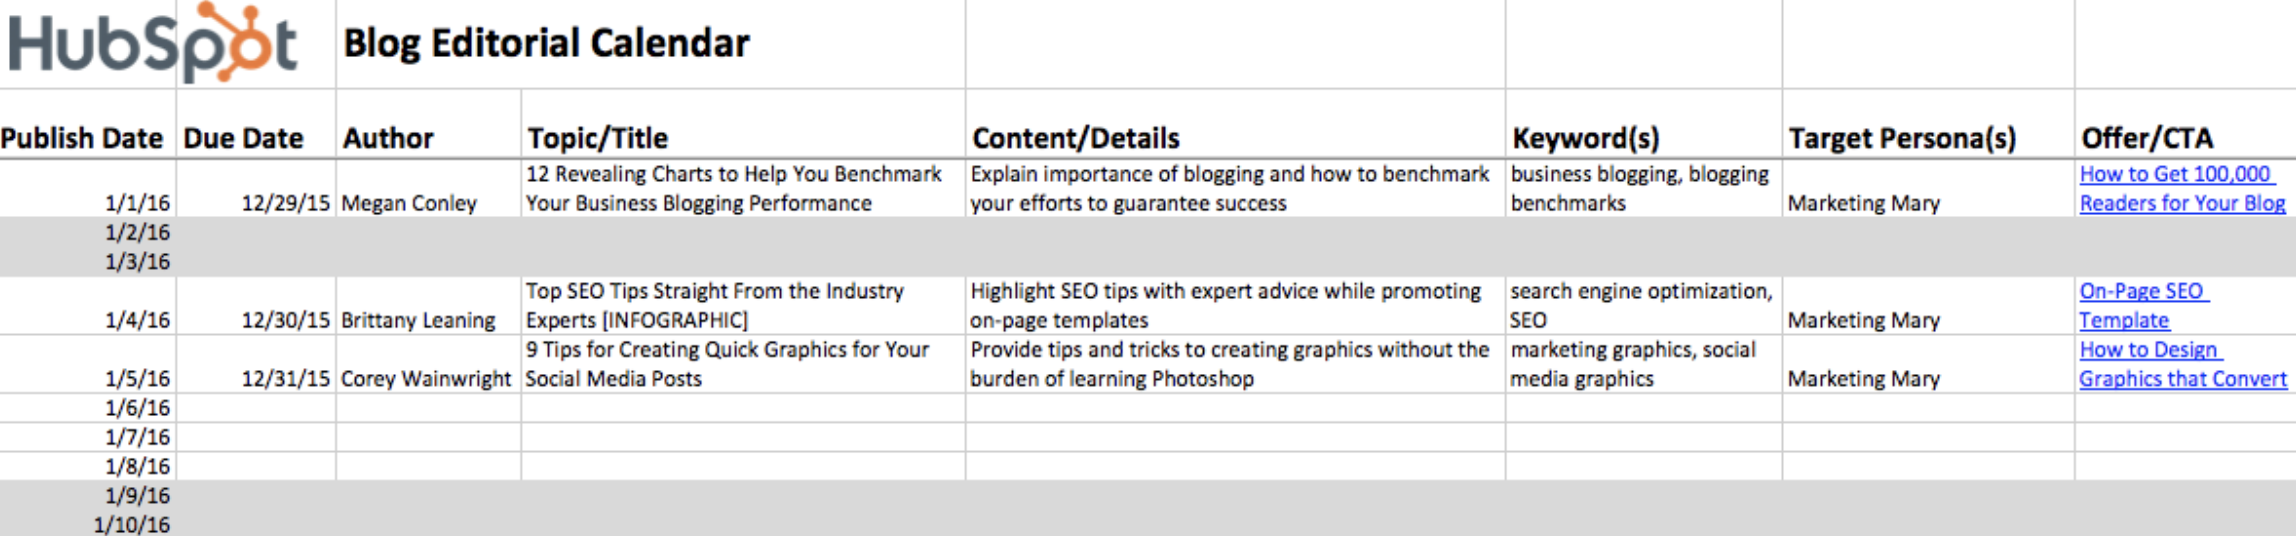 HubSpot's Blog Editorial Calendar - Free Template in Excel